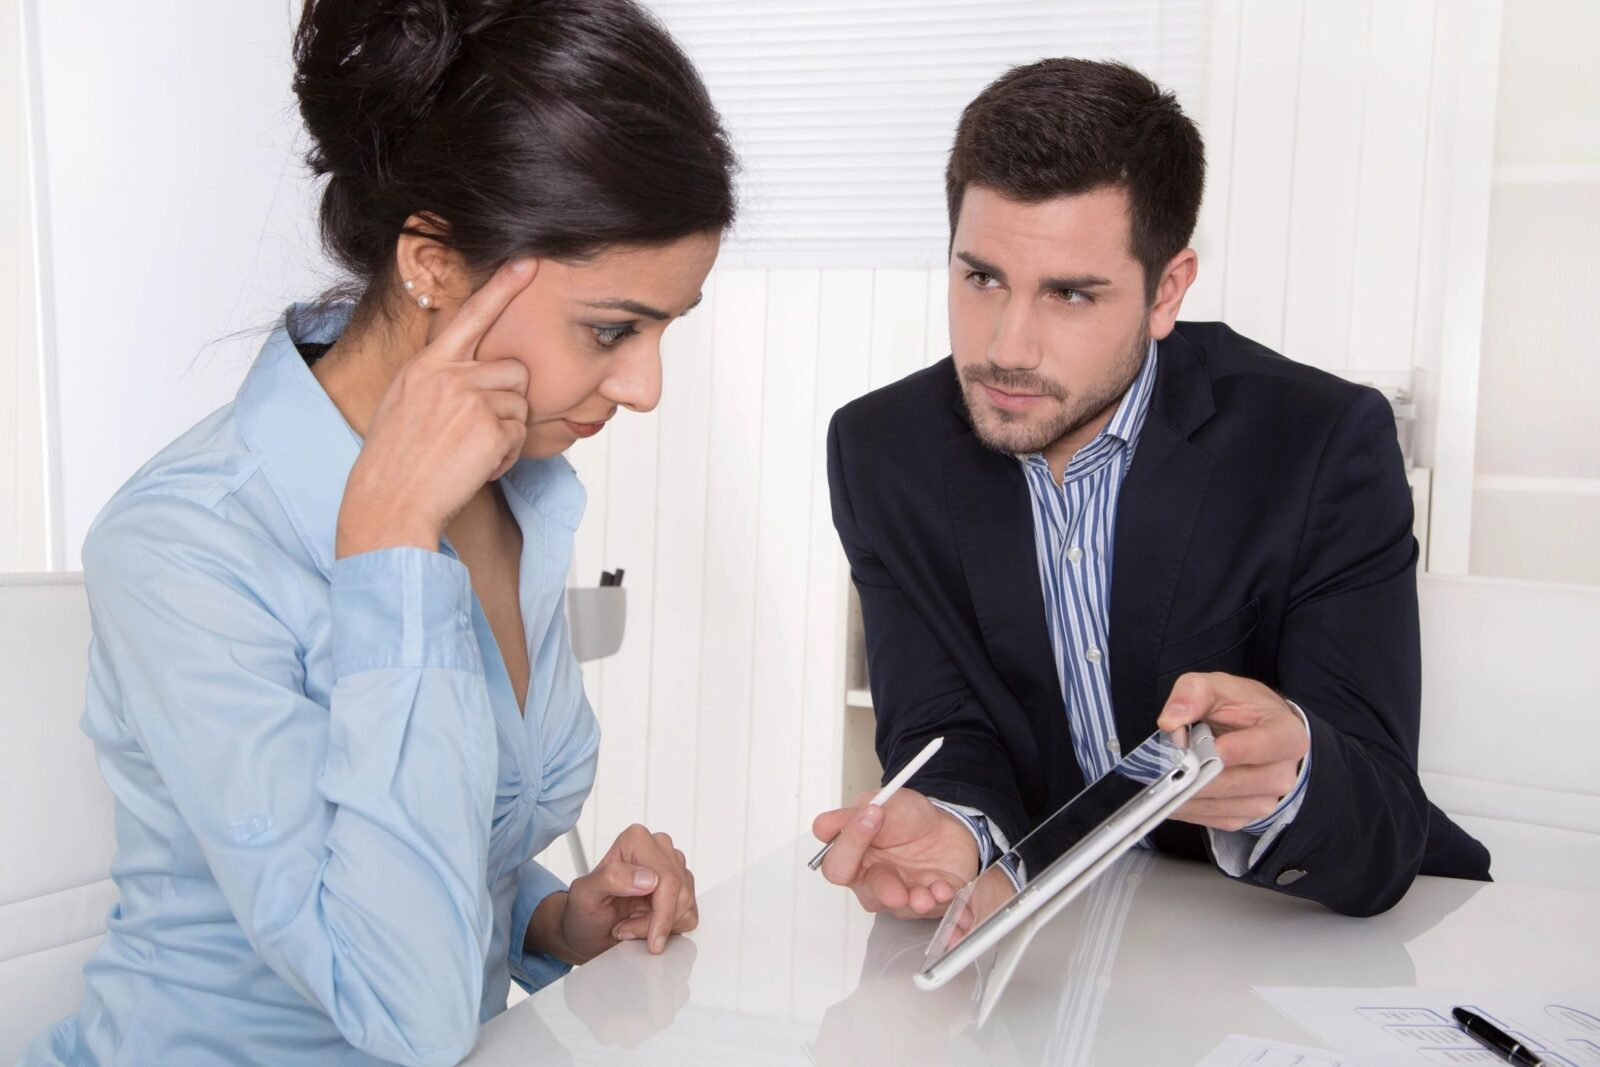 Fix Your Credit Consulting Specialist consulting client